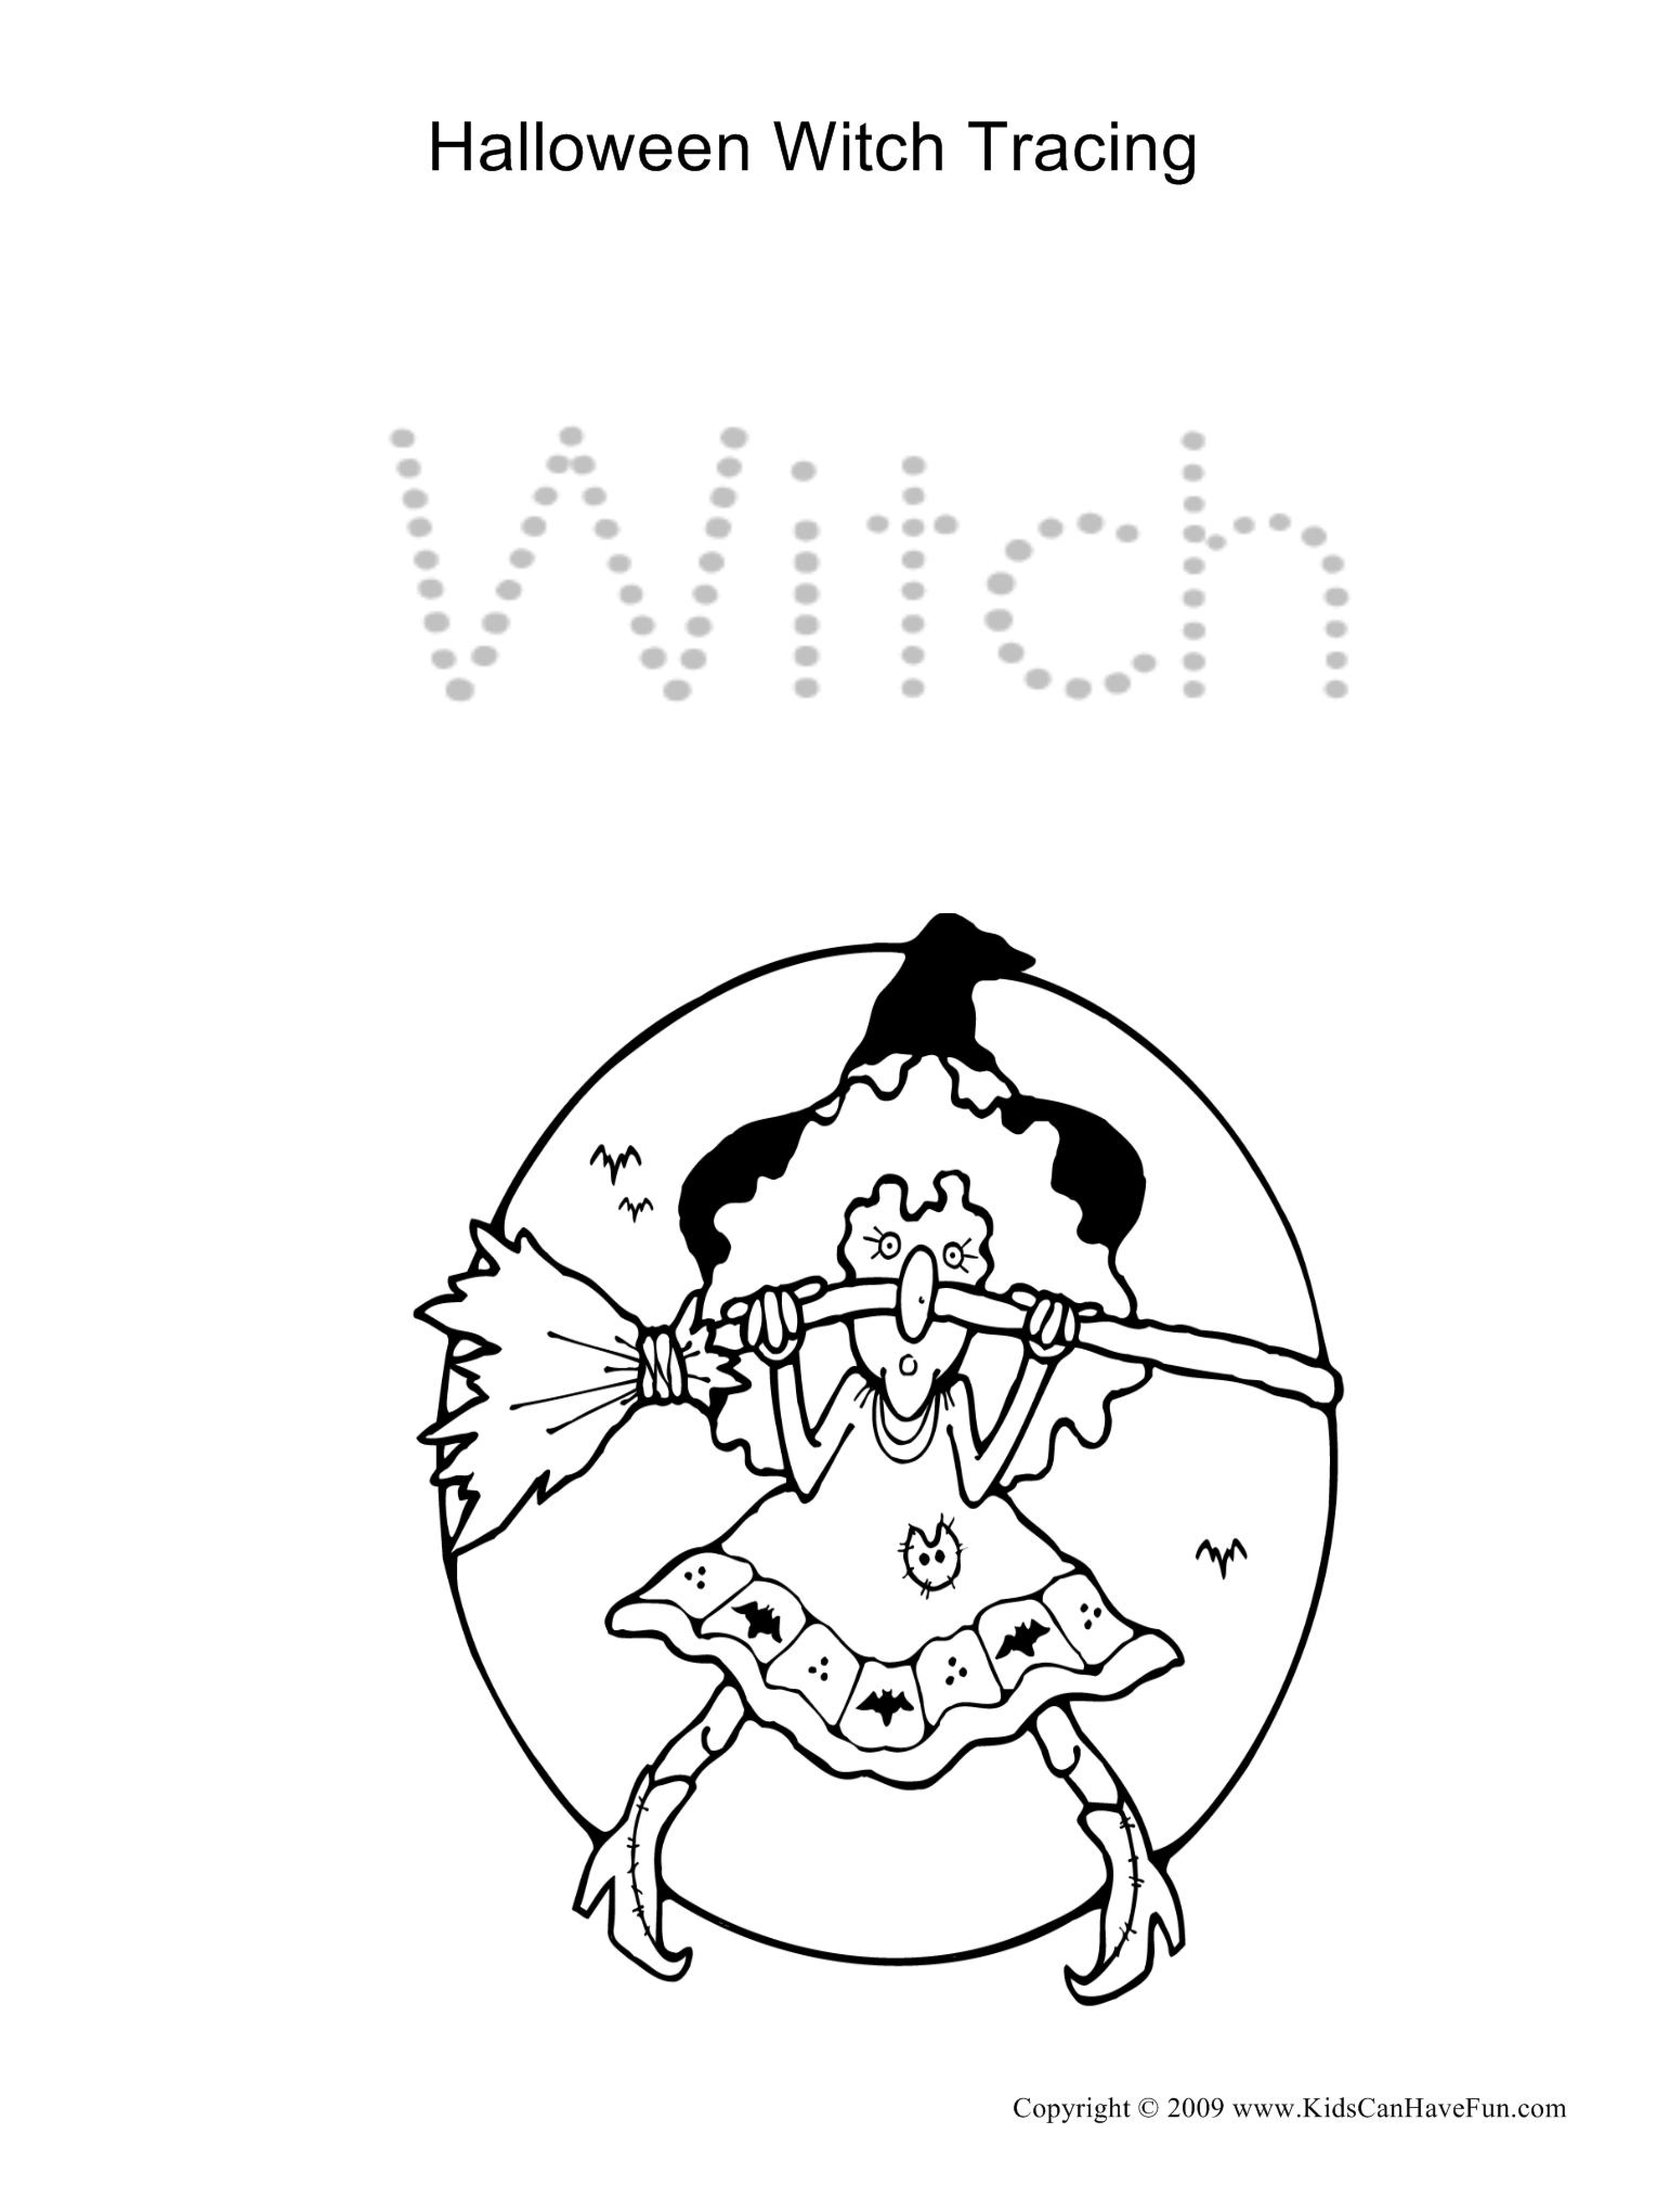 Halloween Witch Tracing Page Dscanhavefun